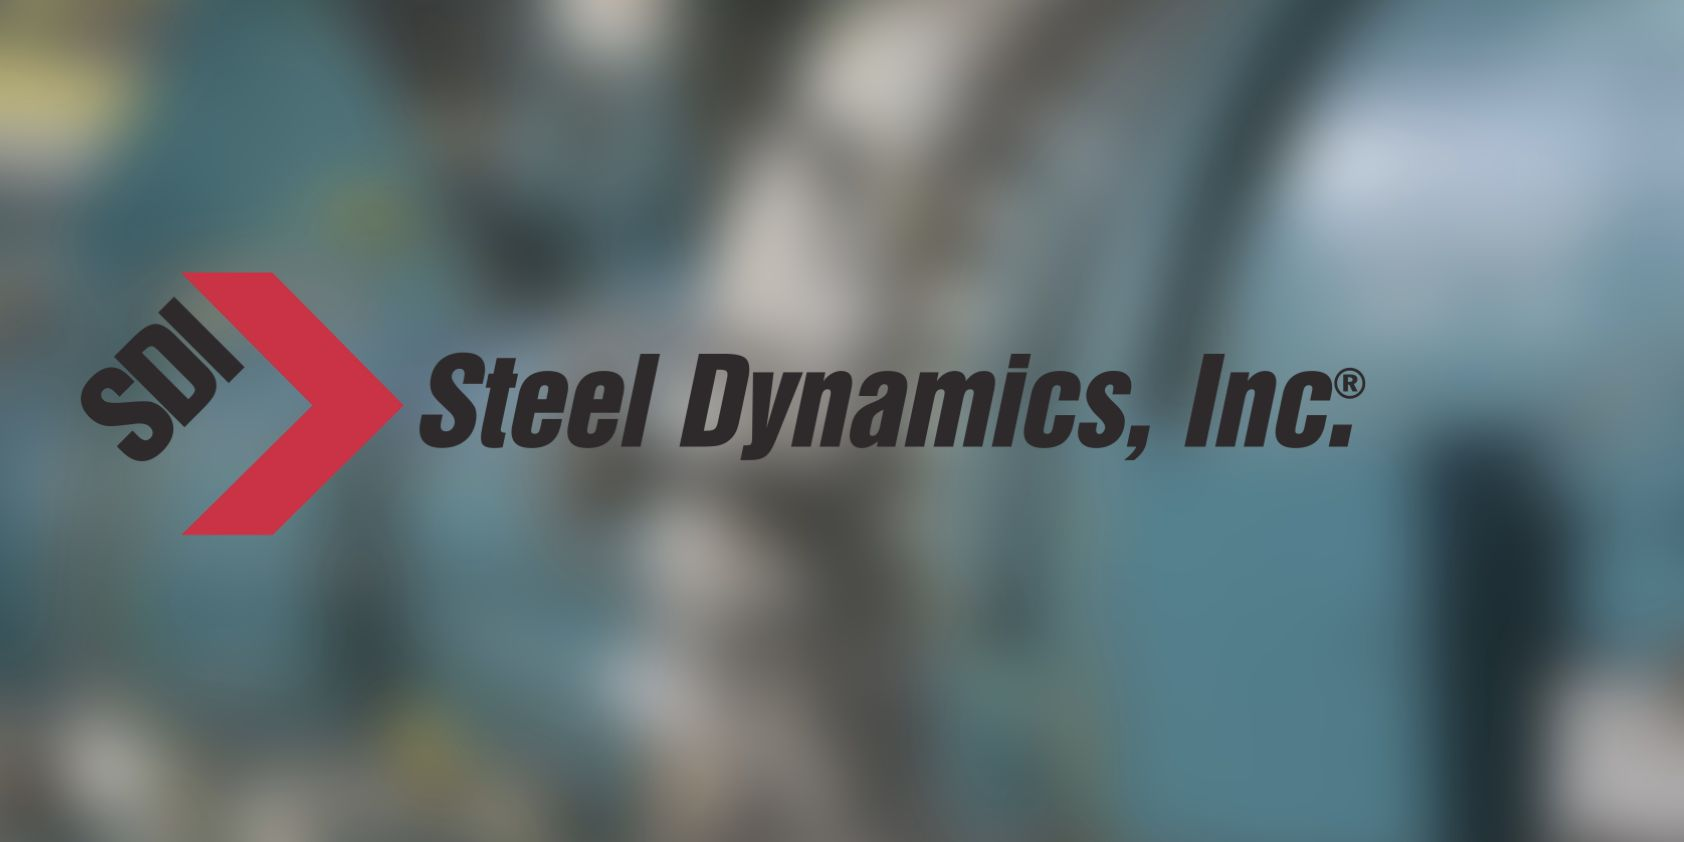 Steel Dynamics to build $1.9B mill in Texas, create 600 jobs